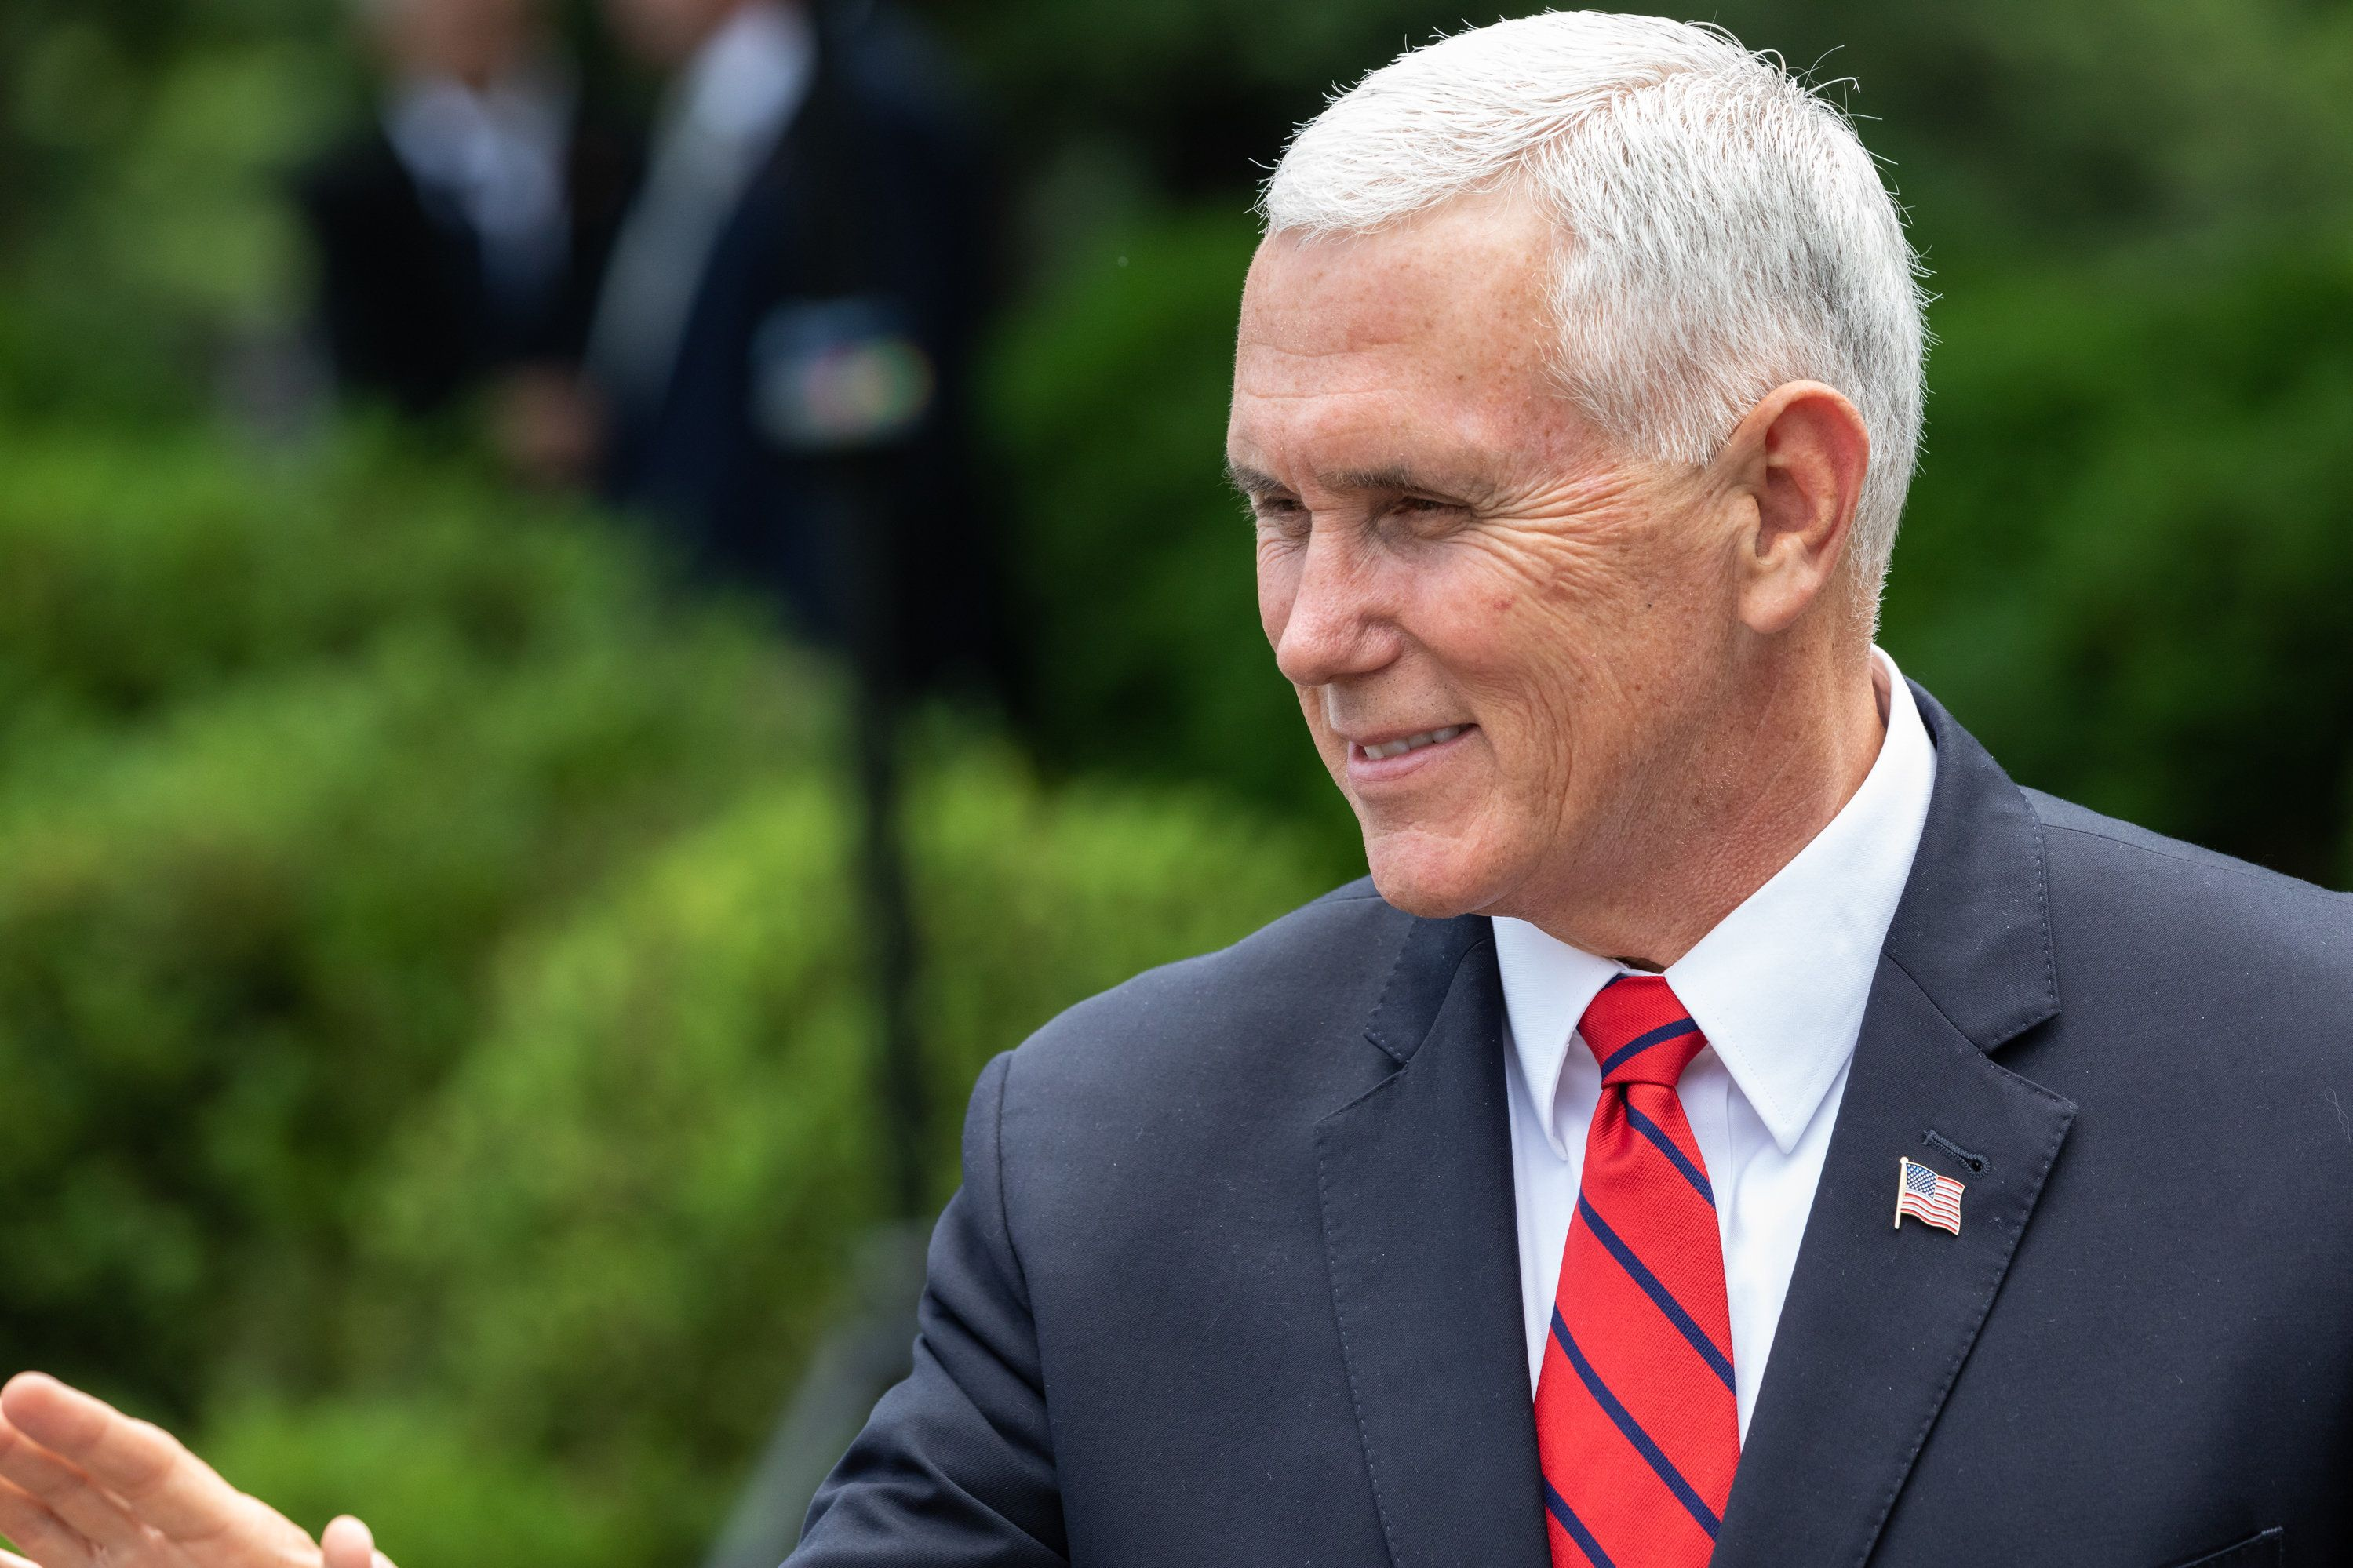 Vice President Mike Pence spoke Wednesday at the Southern Baptist Convention's annual meeting.